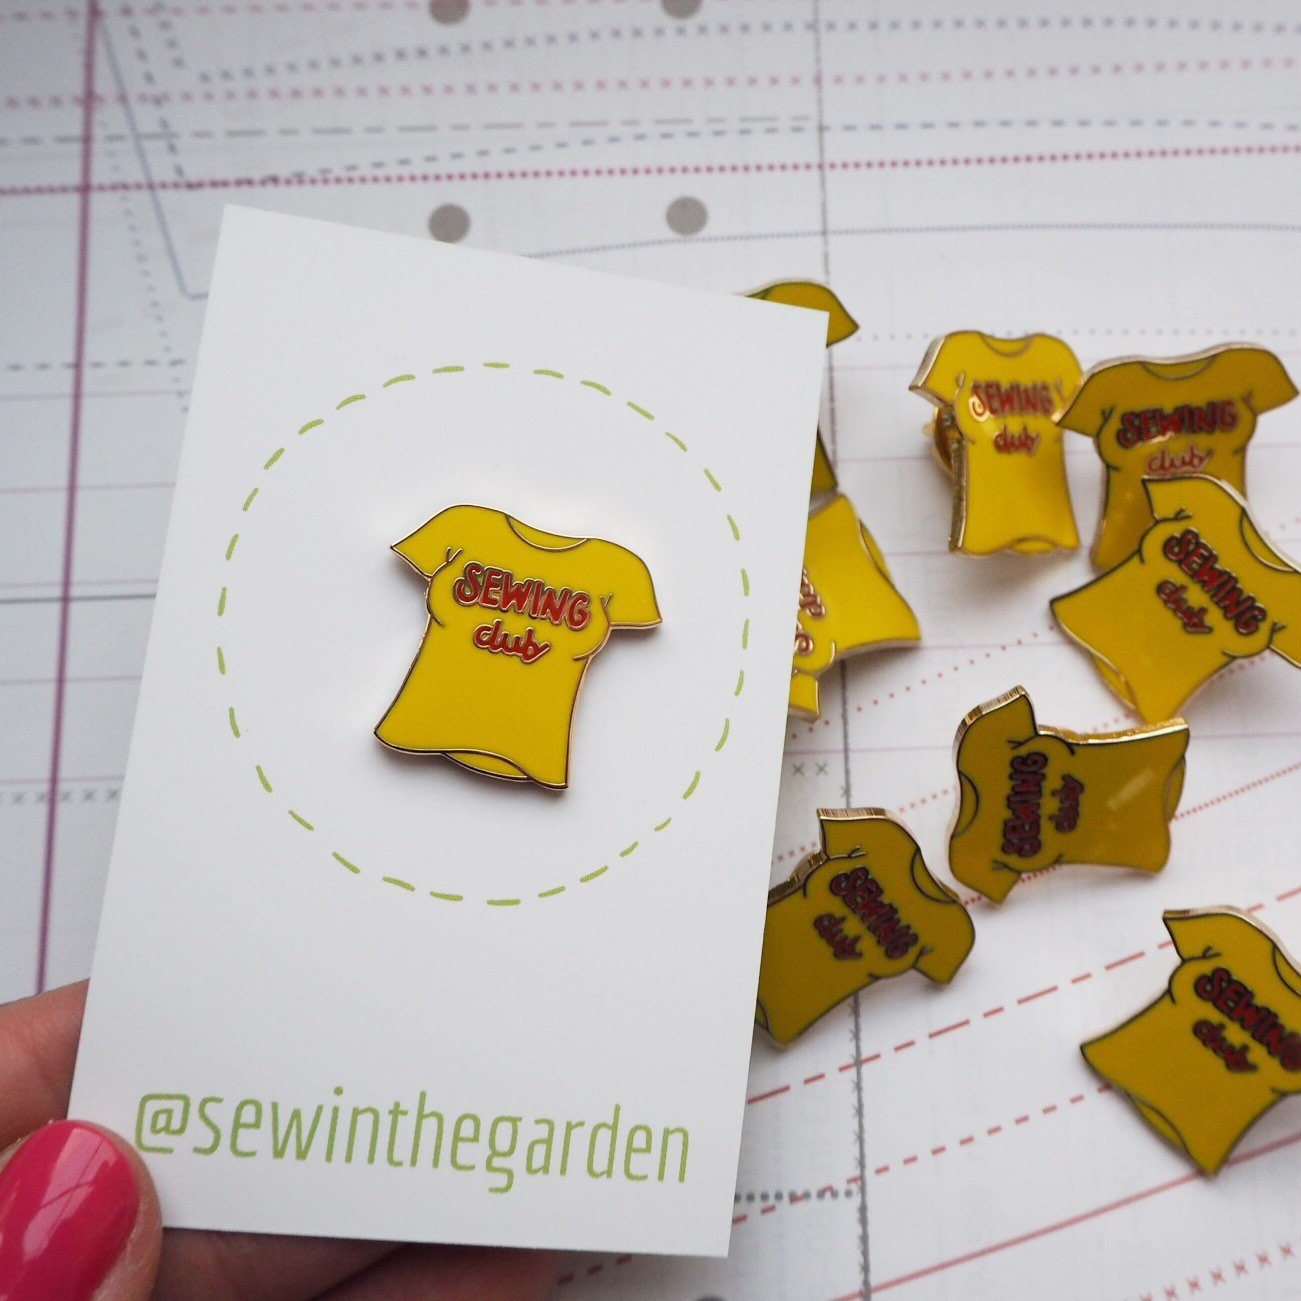 sewing club enamel pin yellow